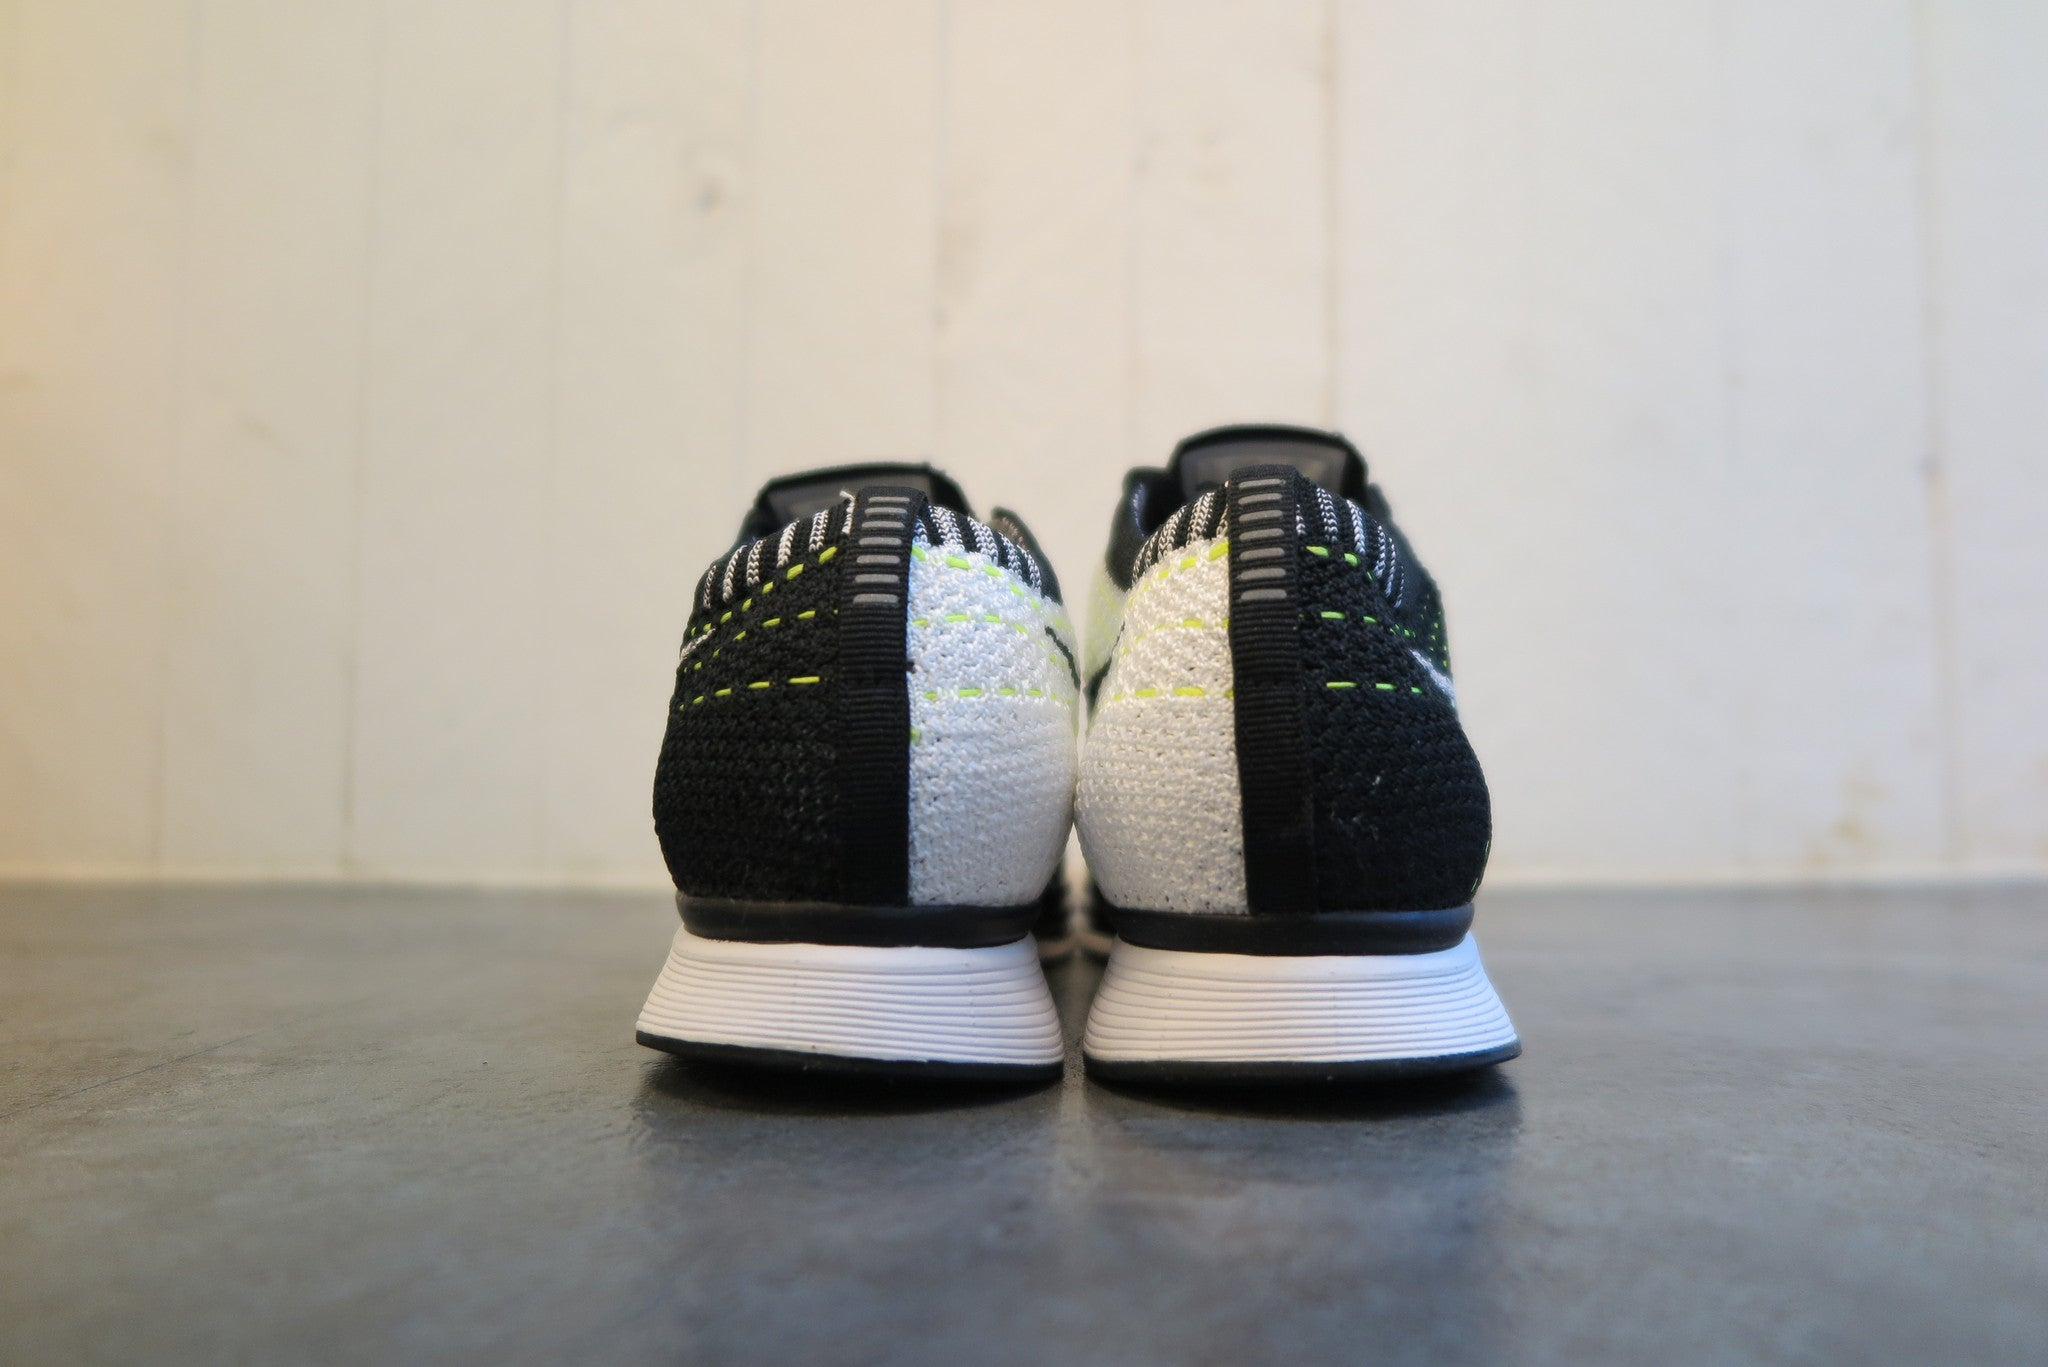 Nike Flyknit Racer in Black/White/Volt #526628-011-Sneakers-Navy Selected Shop